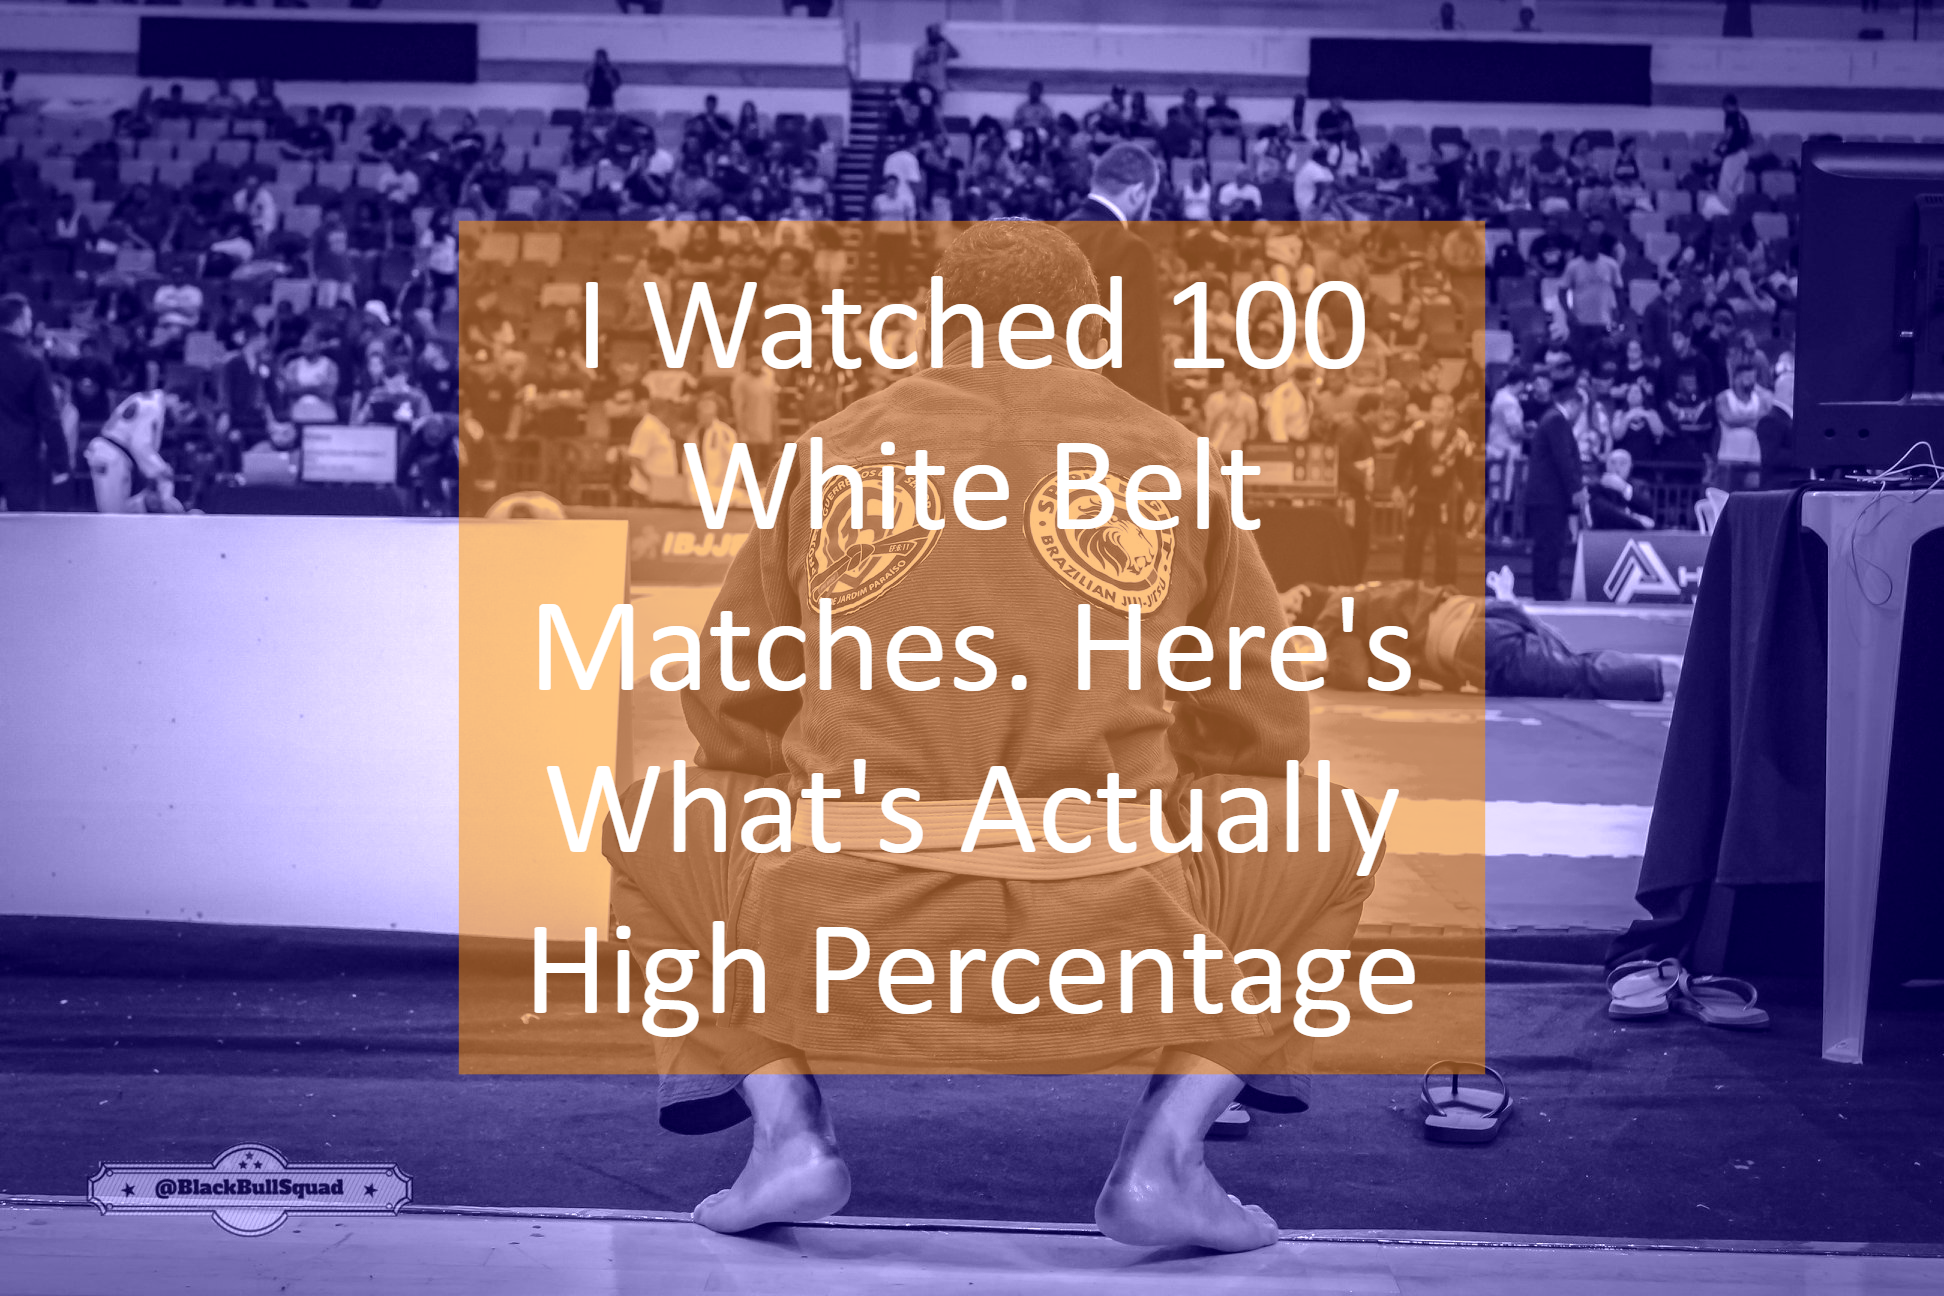 I Watched 100 White Belt Matches  Here's What's Actually